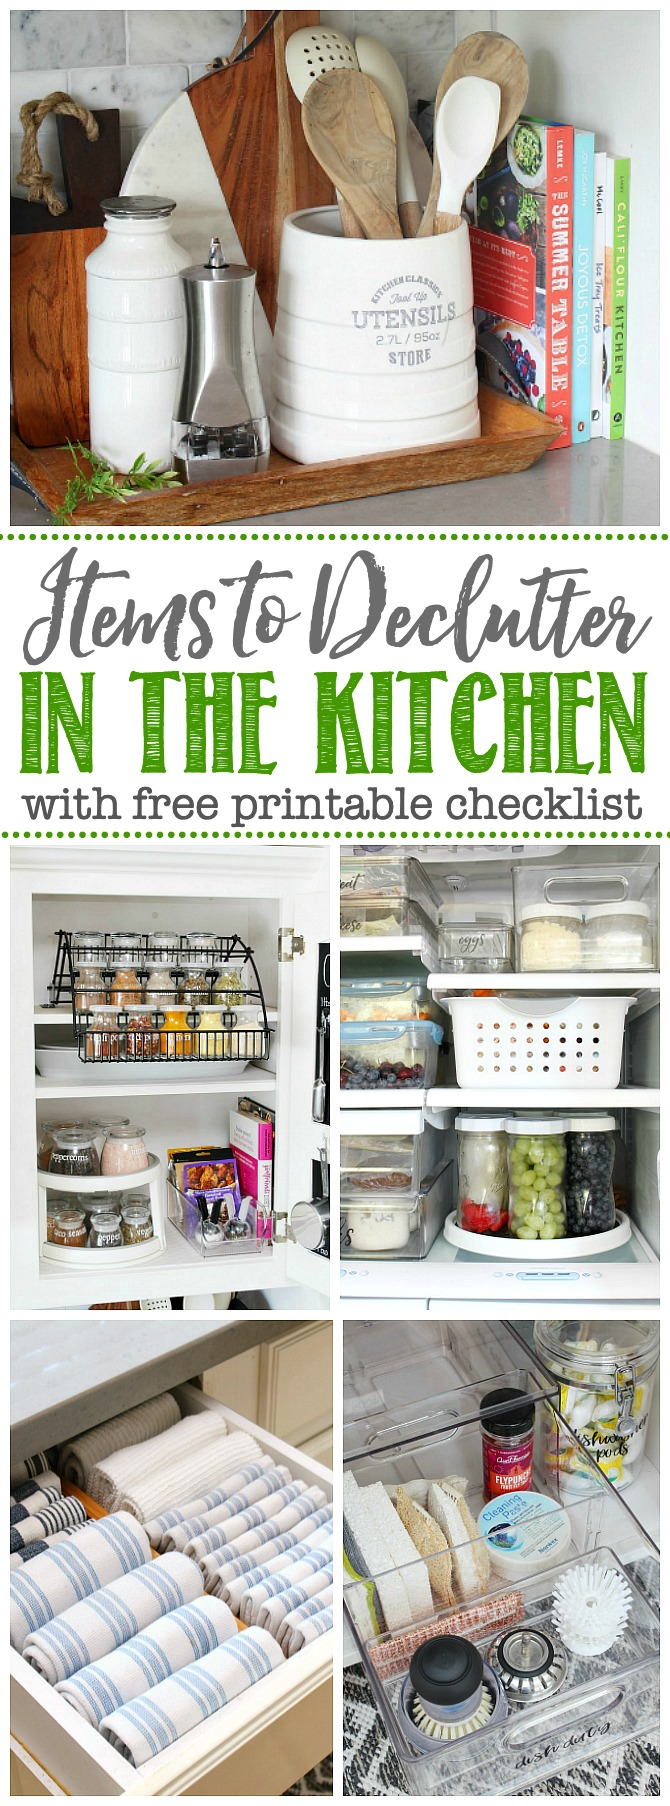 Collection of items to Declutter in the Kitchen.